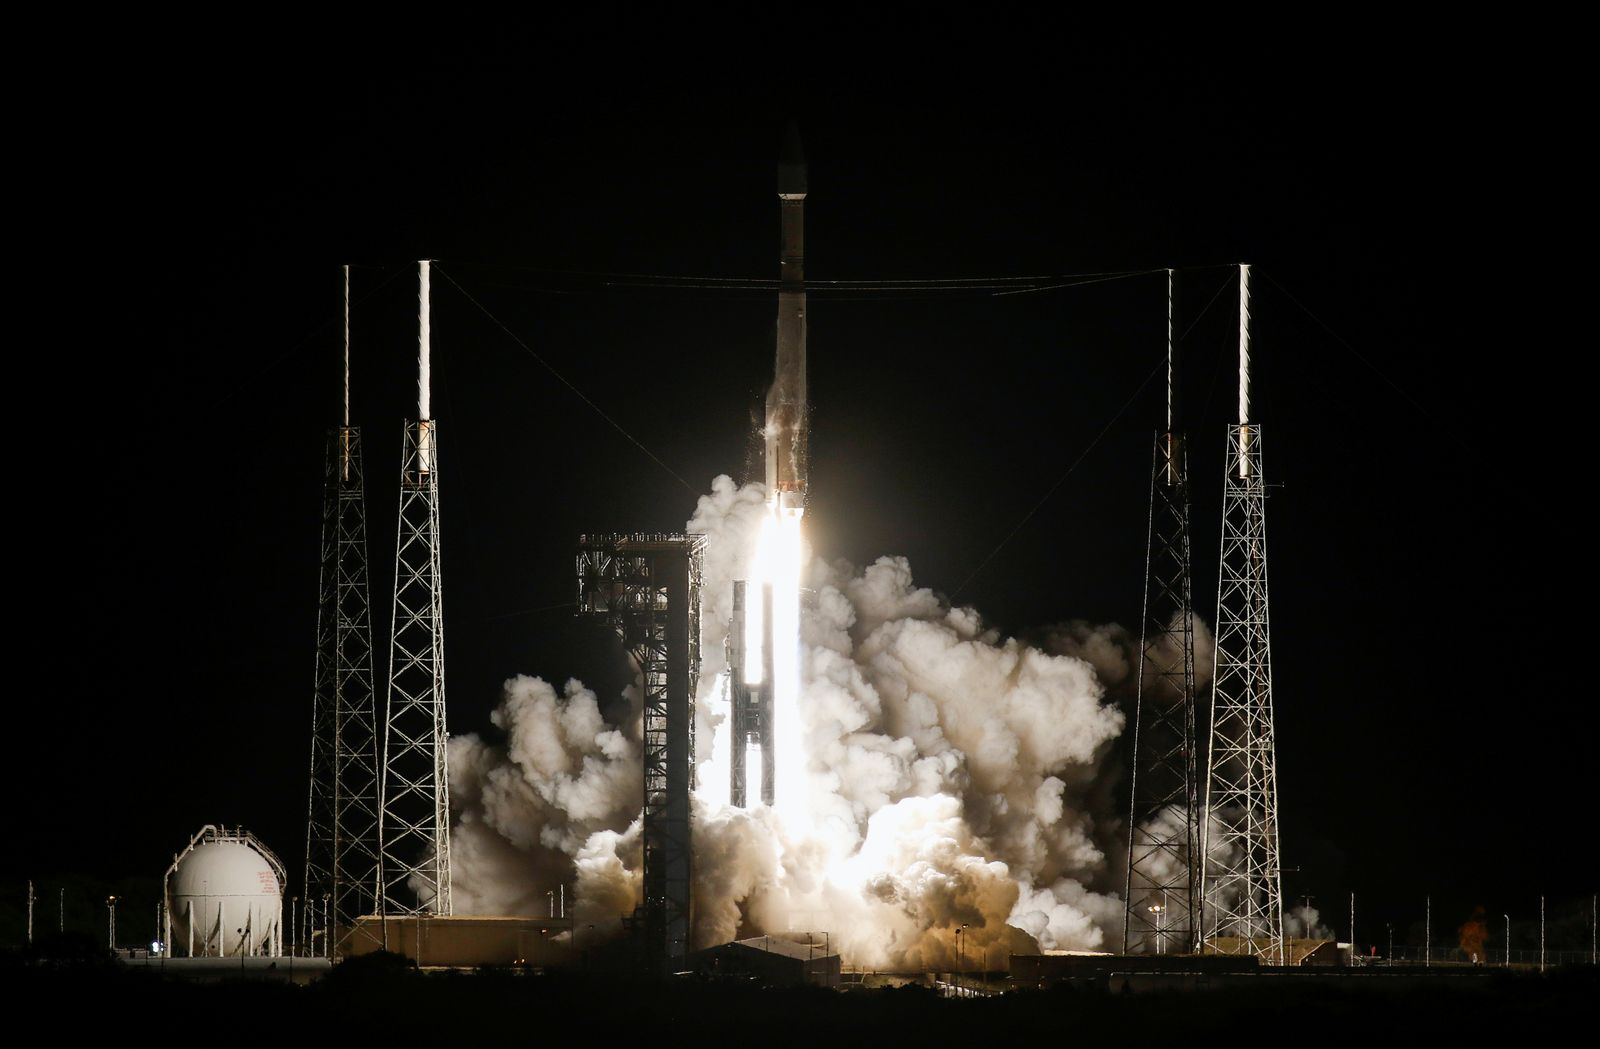 The Solar Orbiter spacecraft, built for NASA and the European Space Agency, lifts off from pad 41 aboard a United Launch Alliance Atlas V rocket at the Cape Canaveral Air Force Station